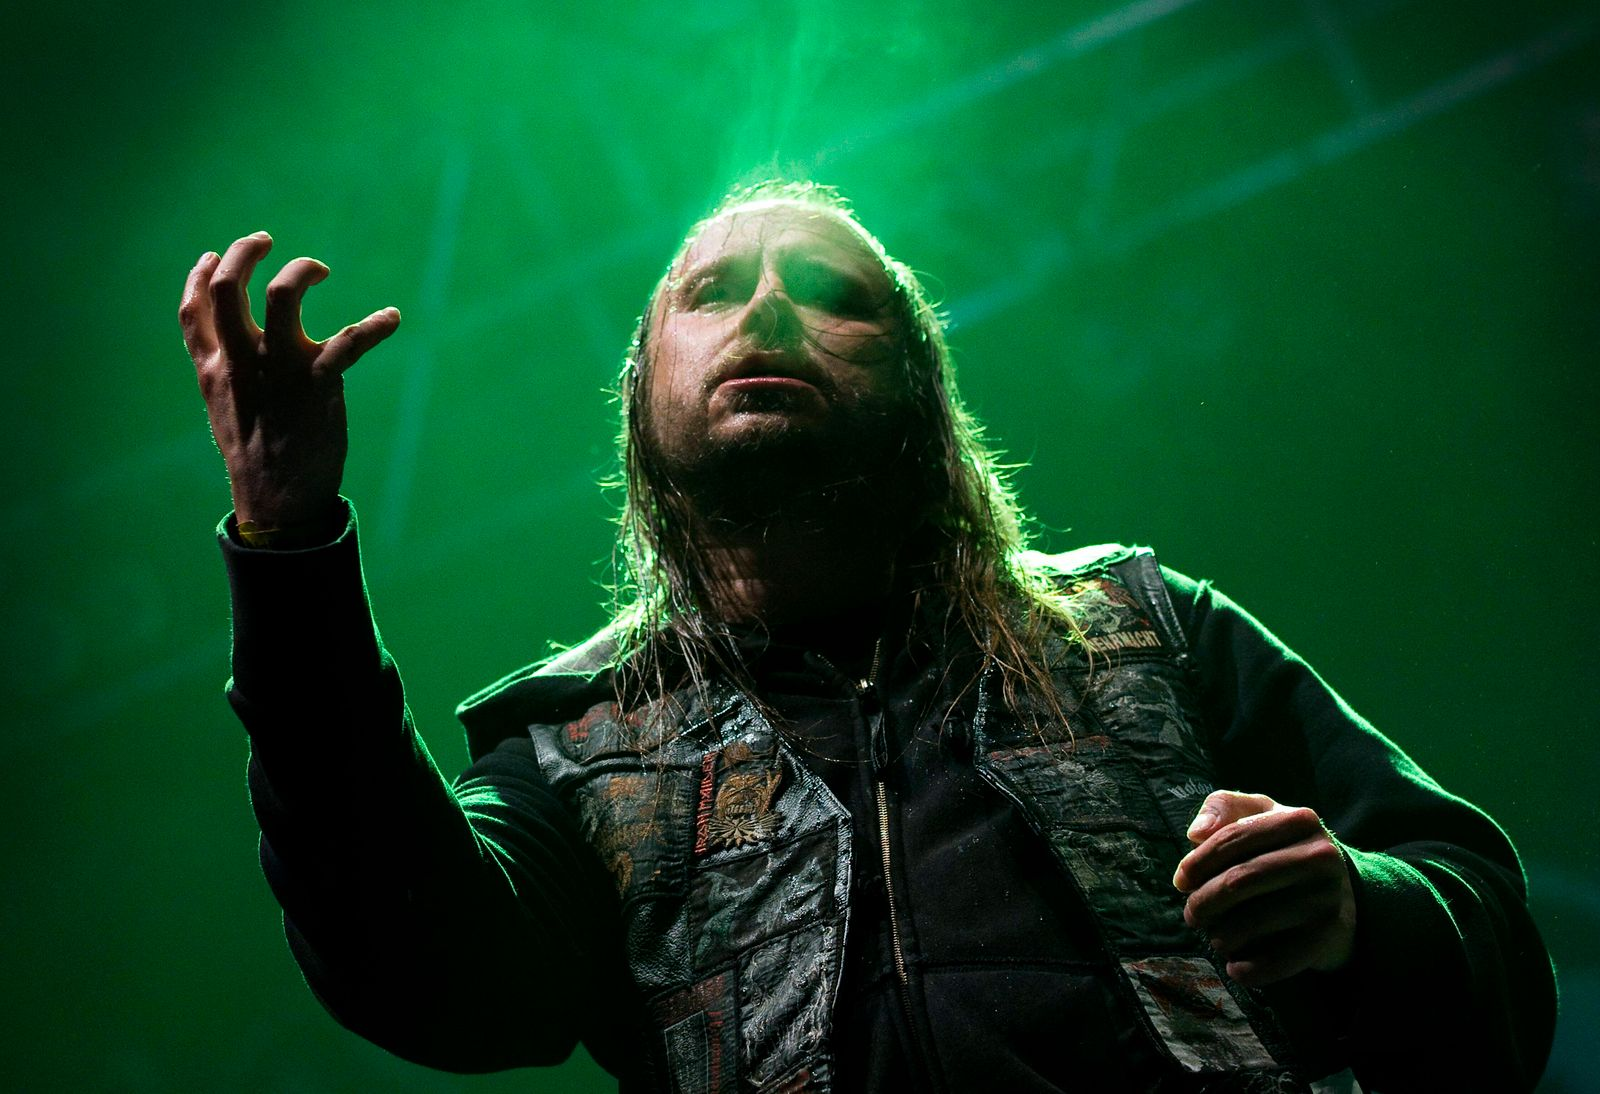 L-G Petrov (Lars-Goran Petrov), singer in the Swedish death metal band Entombed A D, has died at the age of 49. Petrov h